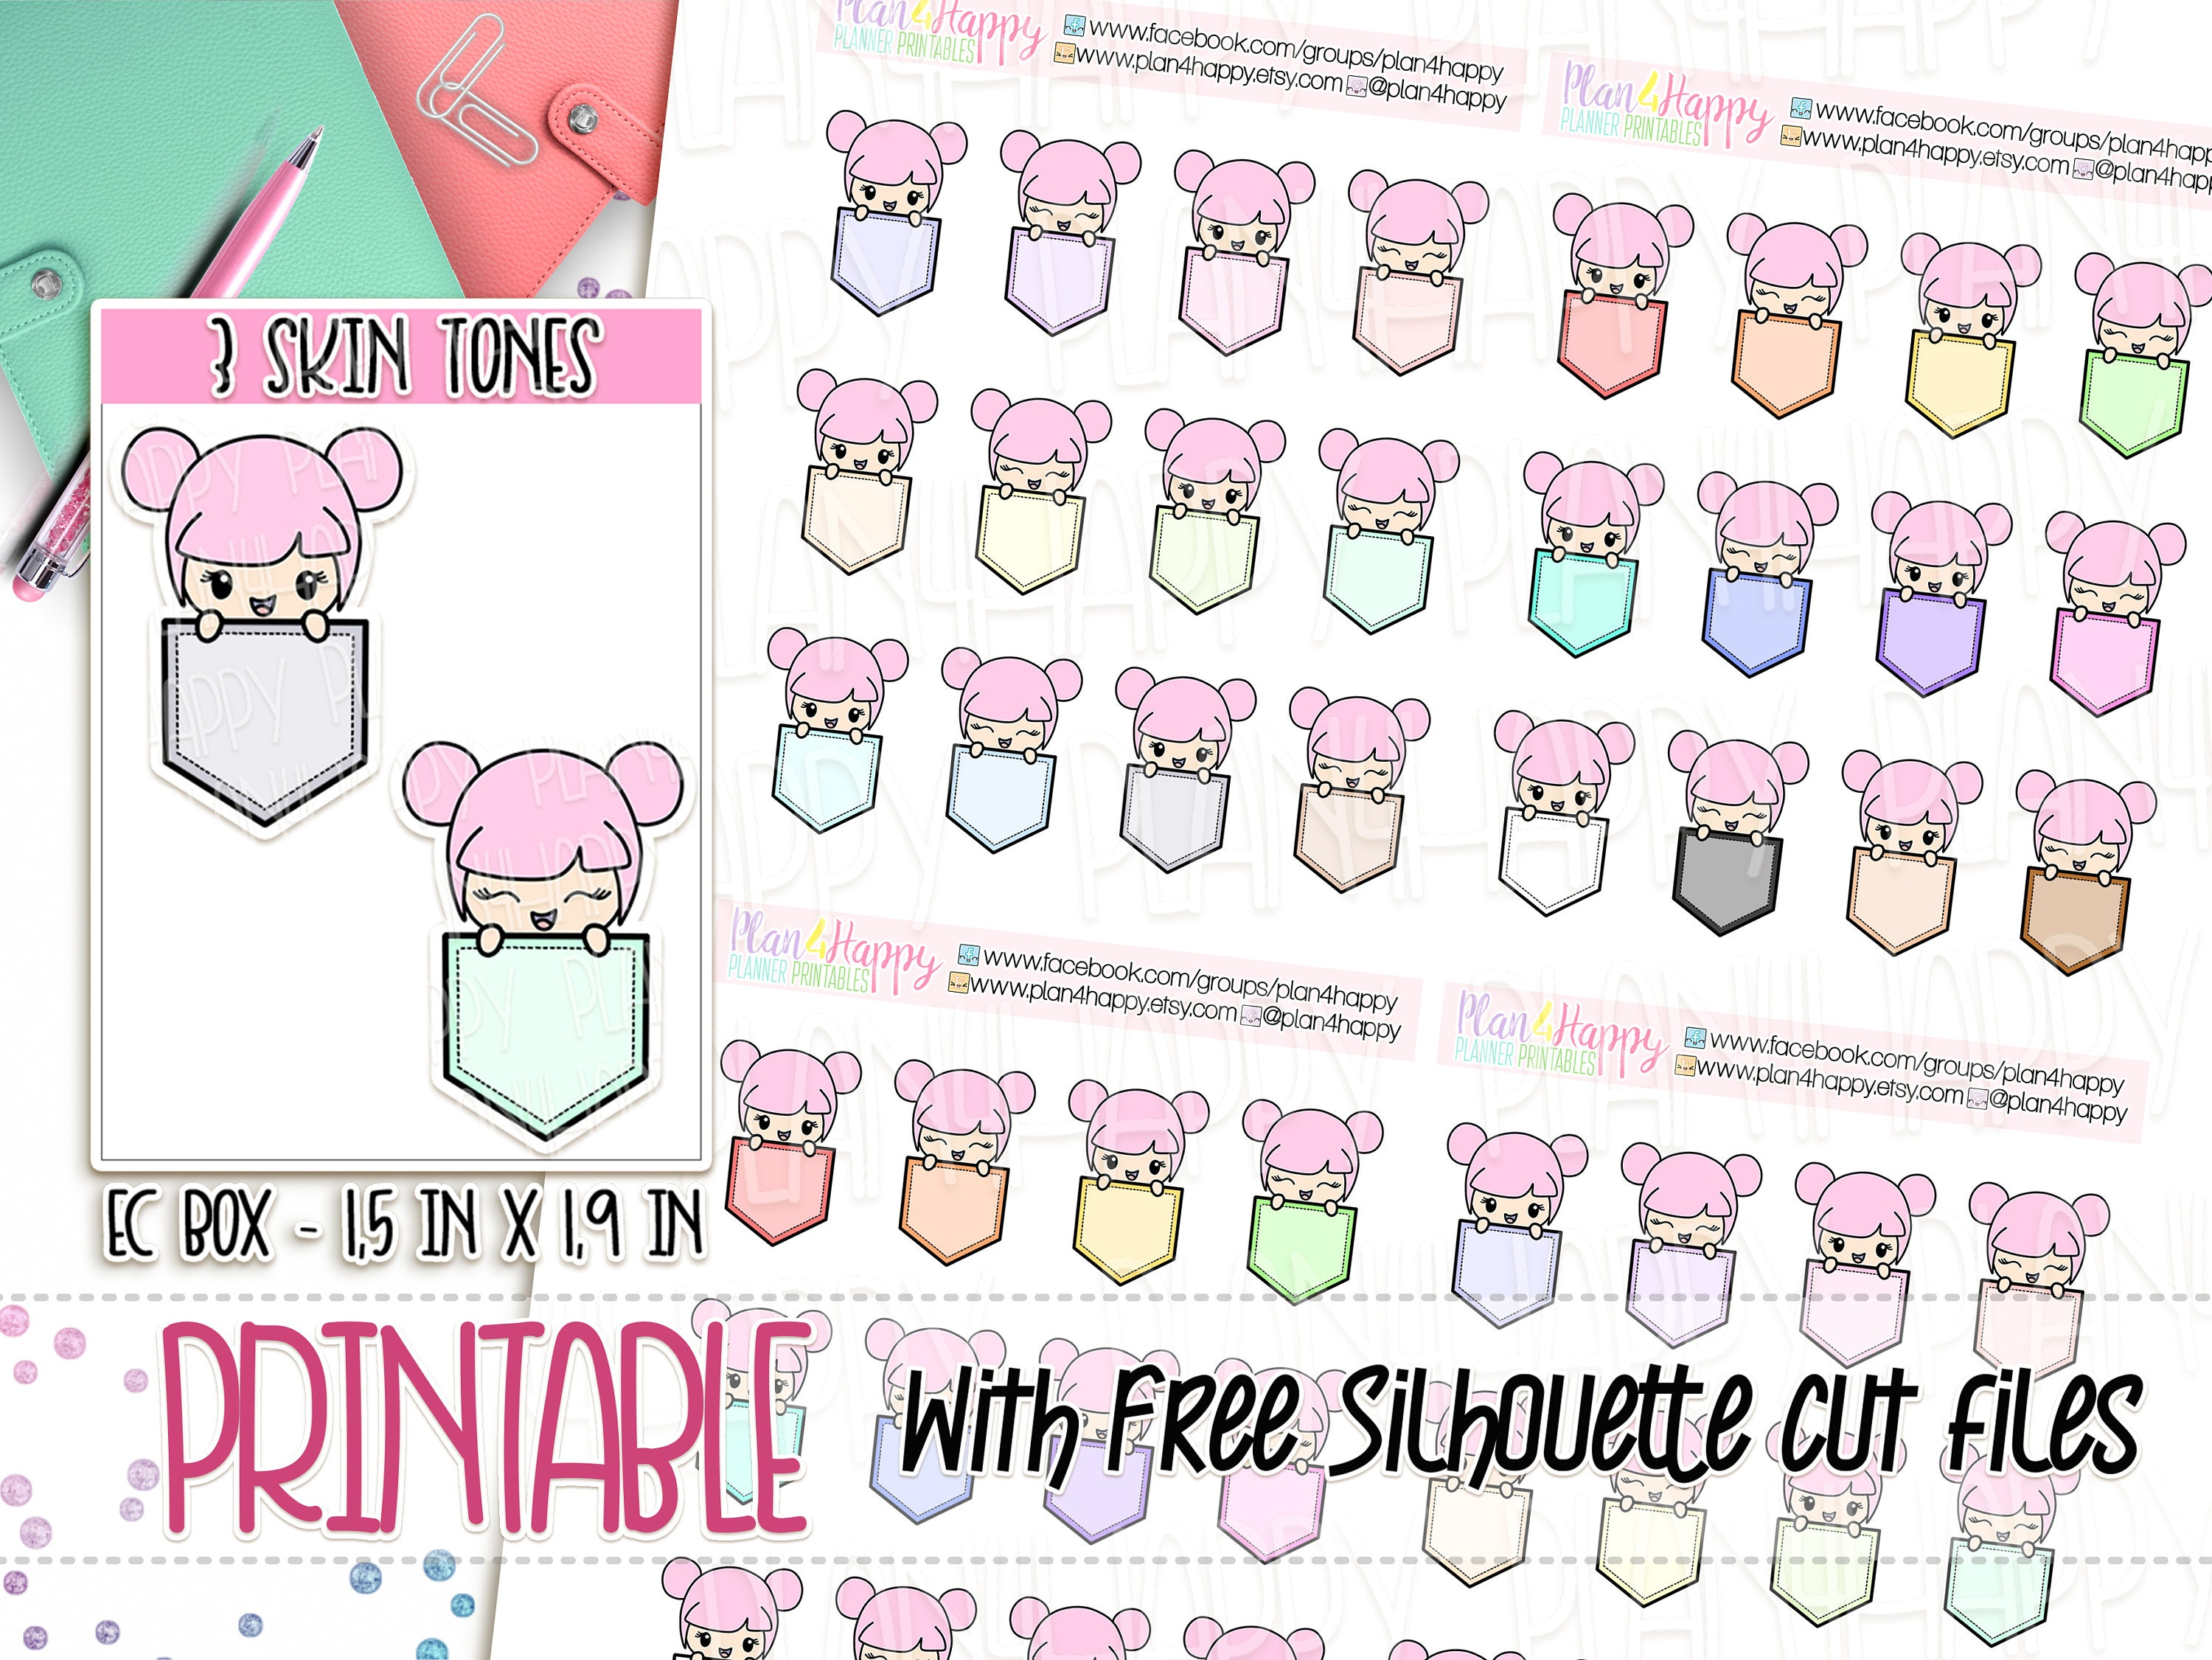 photograph relating to Printable Sticker Sheets referred to as Printable Planner Stickers, Rosie - 3 Pores and skin Tones, Peekaboo Flag Stickers - Tiny, Lovable Stickers, Printable Sticker Sheets, Doodle Stickers